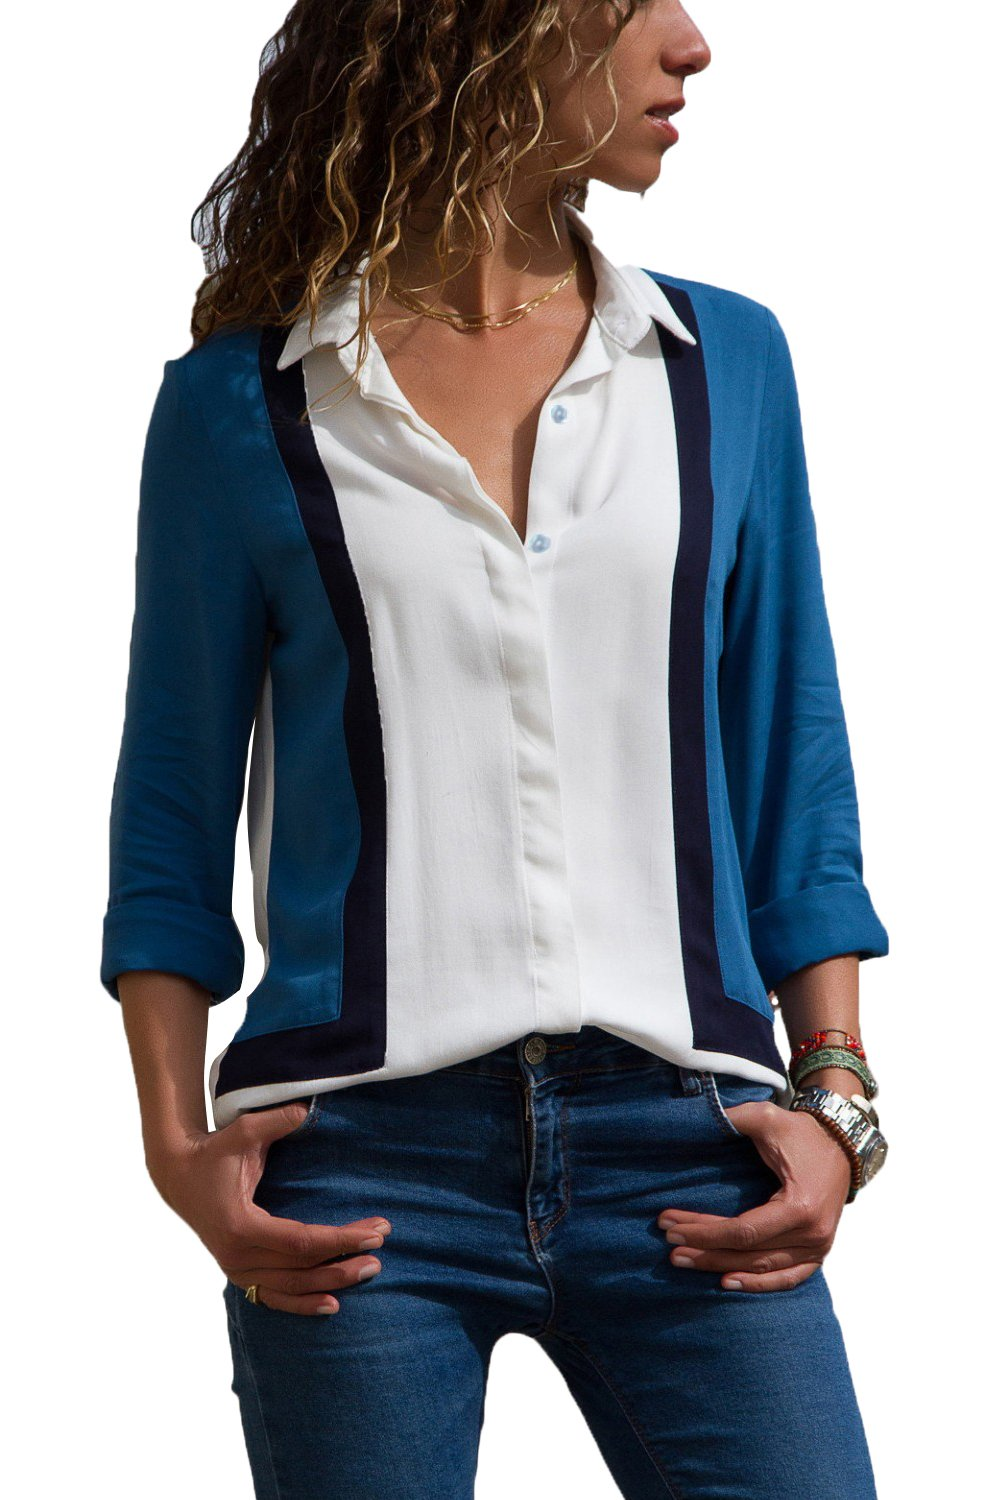 White long-sleeve shirt in blue Size S